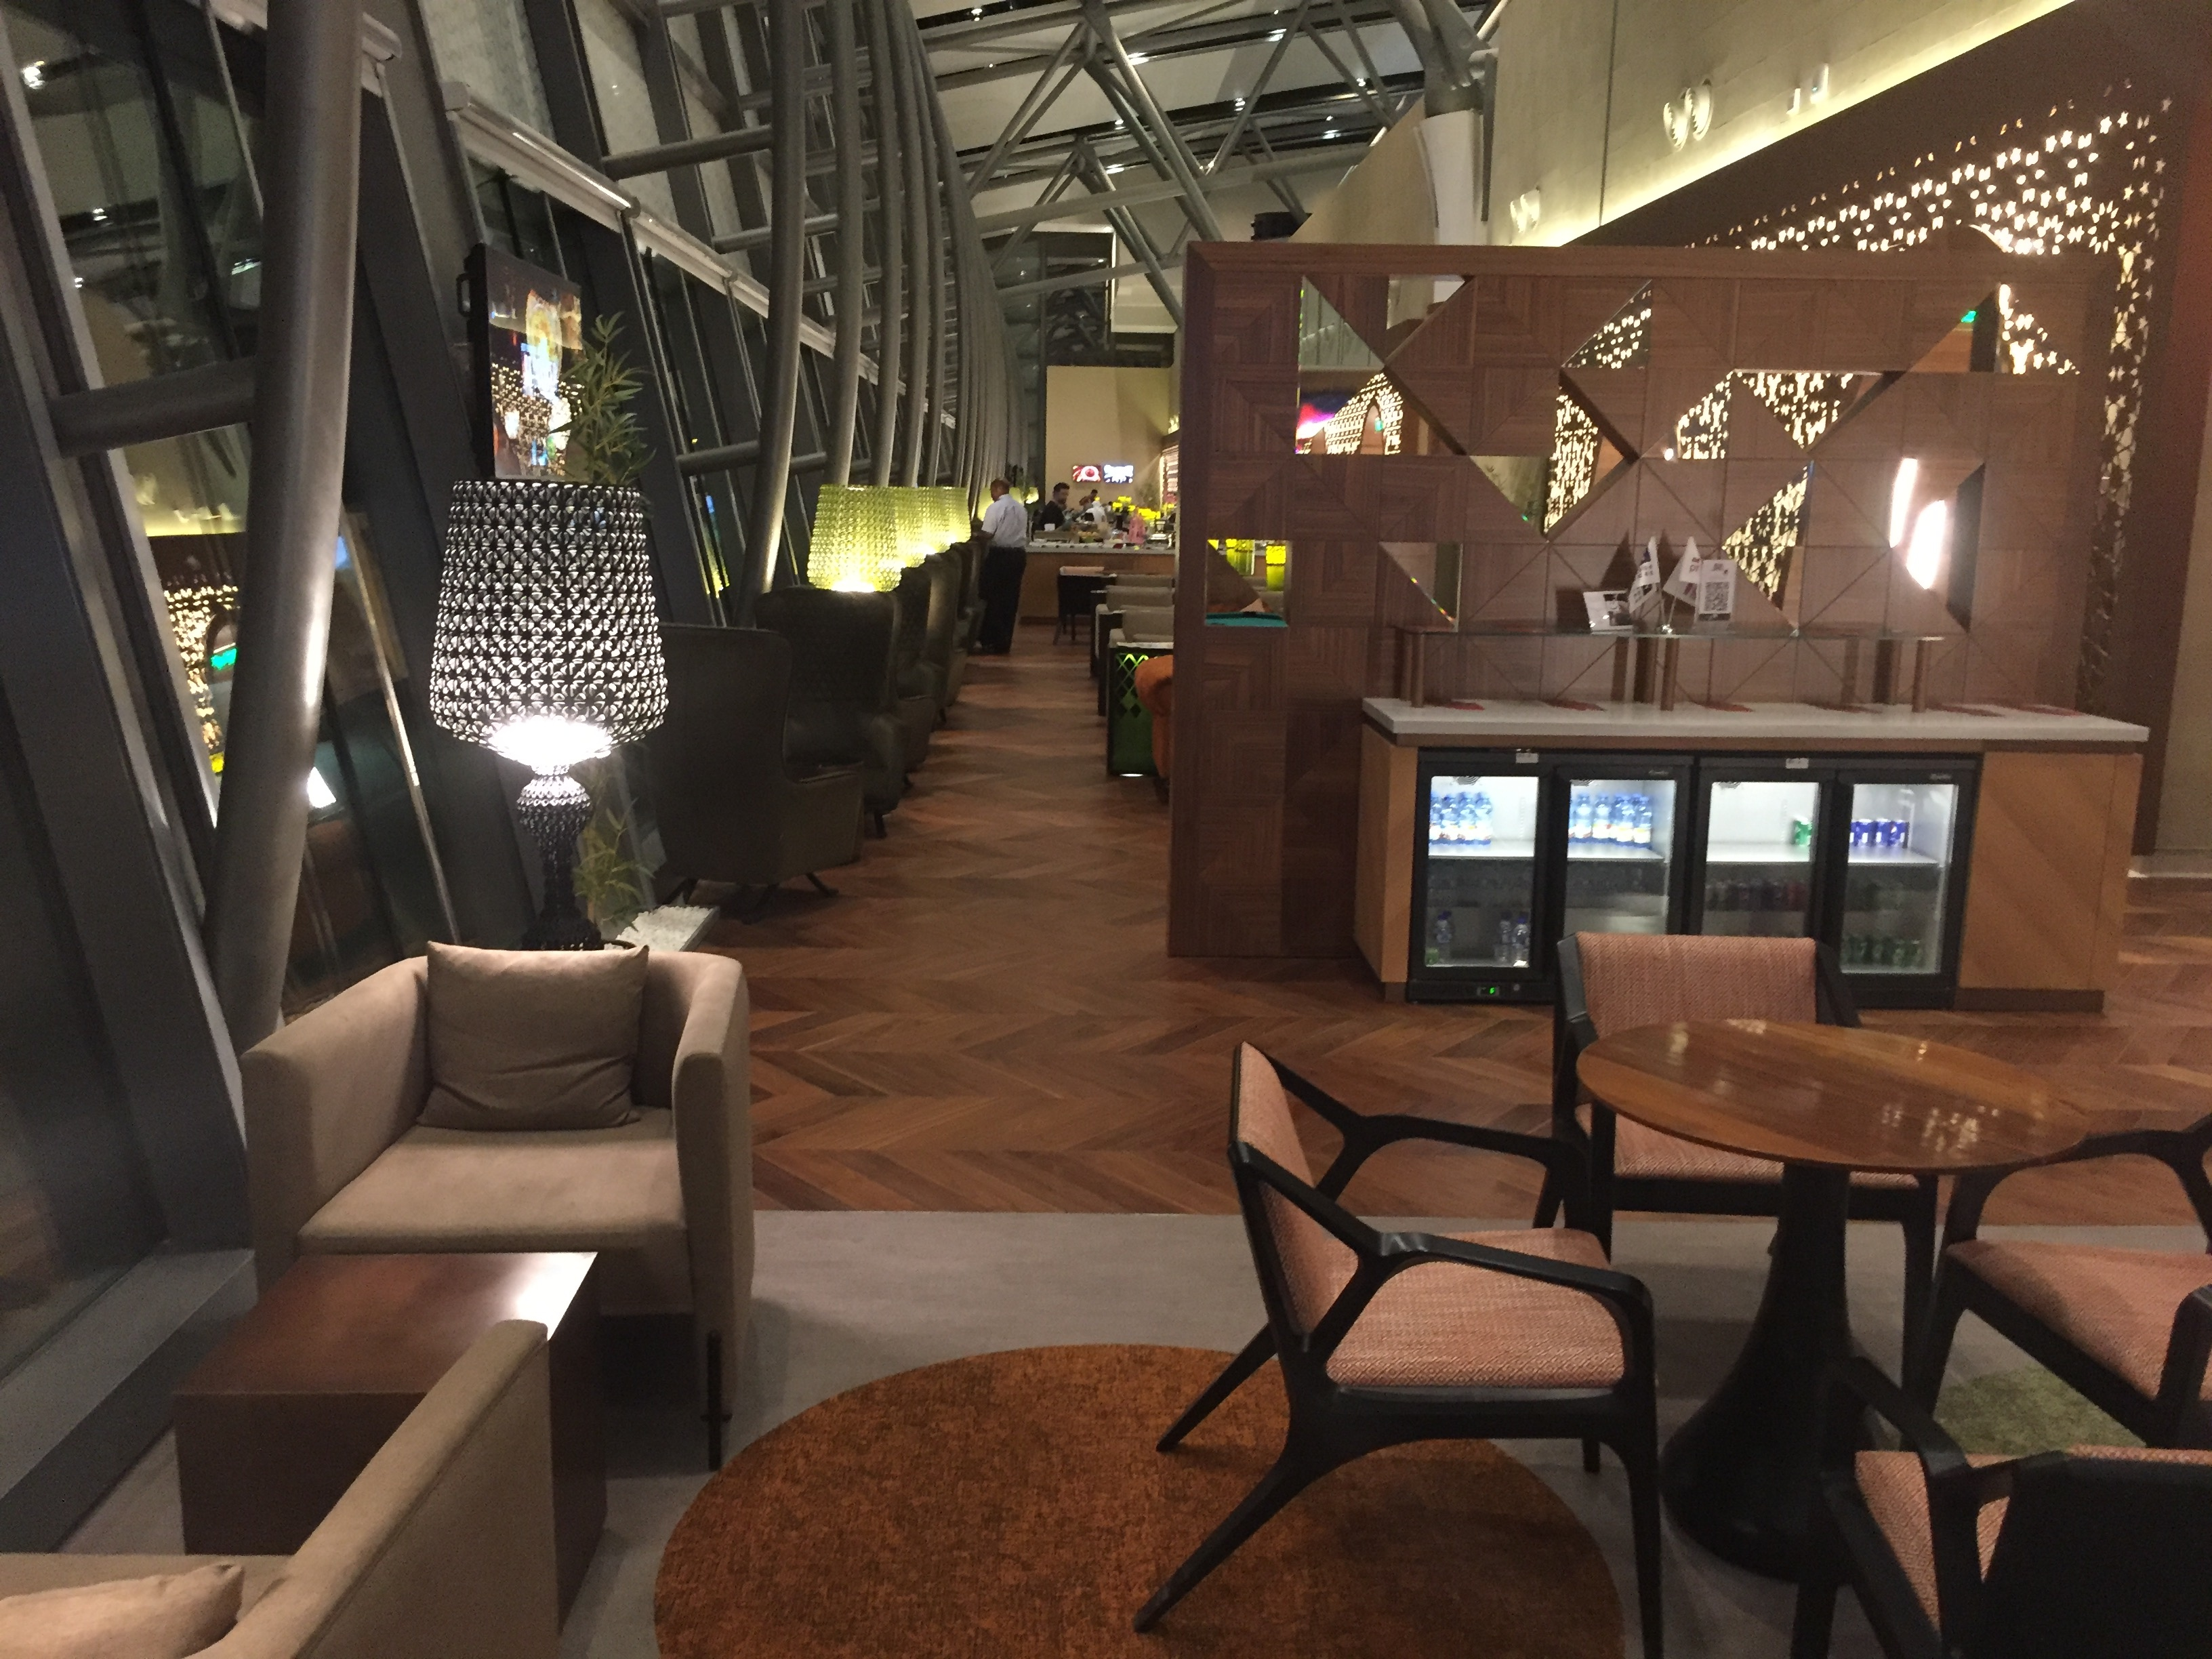 Snack sitting area | The Primeclass Lounge Muscat